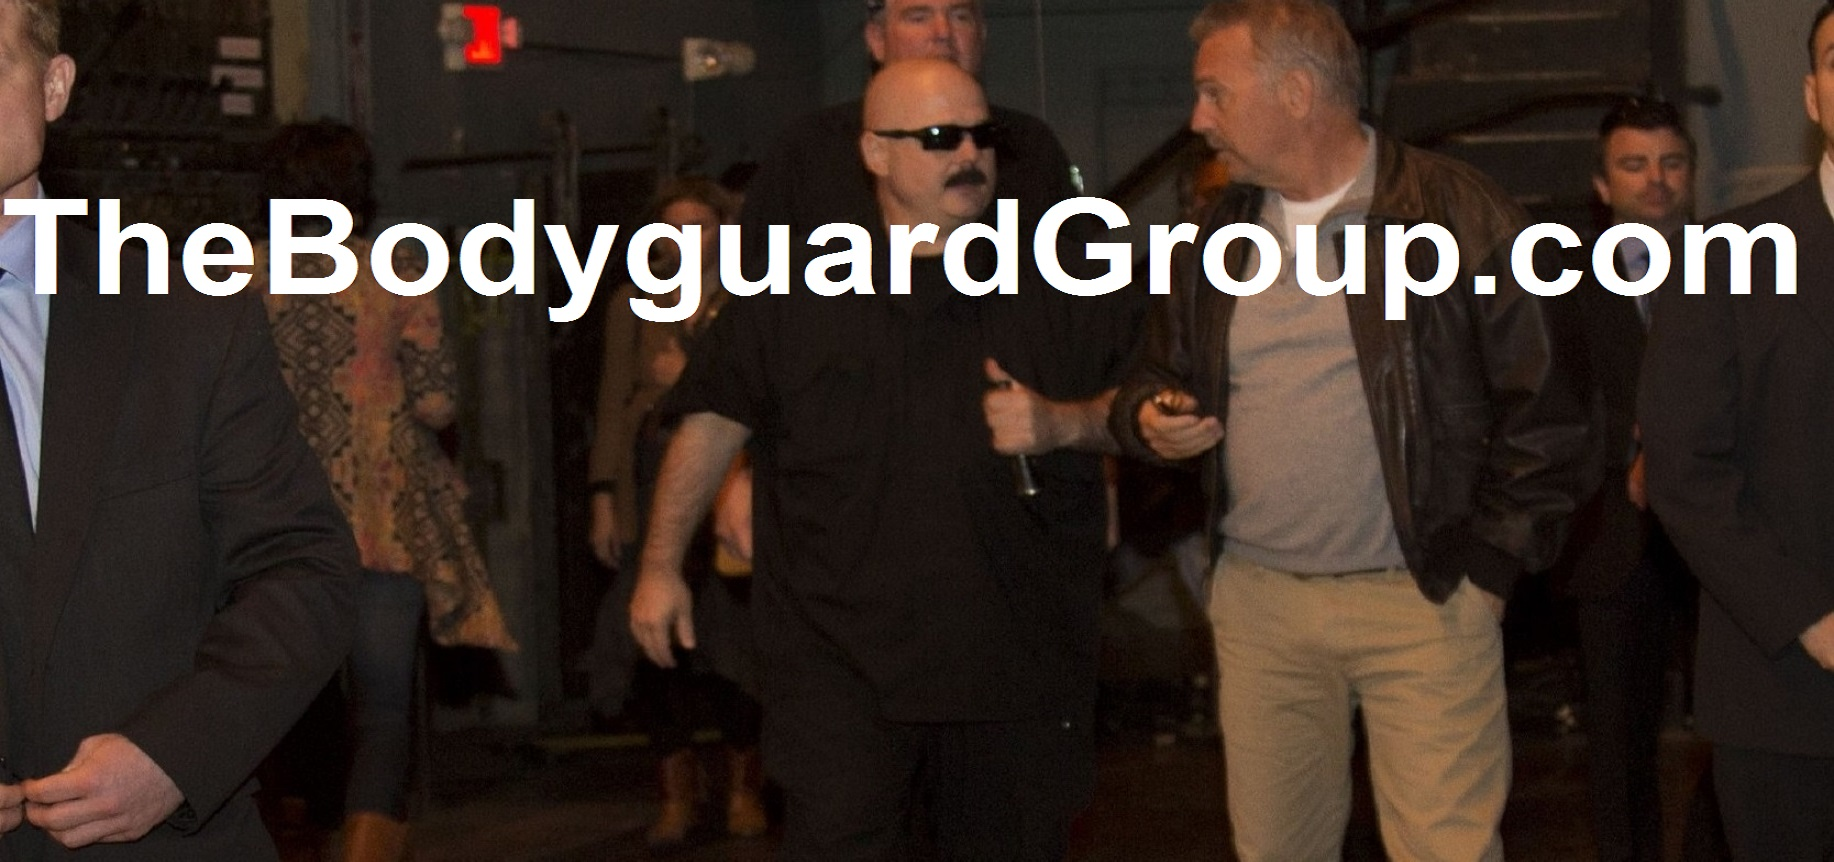 Famous Celebrity Bodyguards Kris Herzog and The Bodyguard Group of Beverly Hills 90210 Protecting Kevin Costner 2017